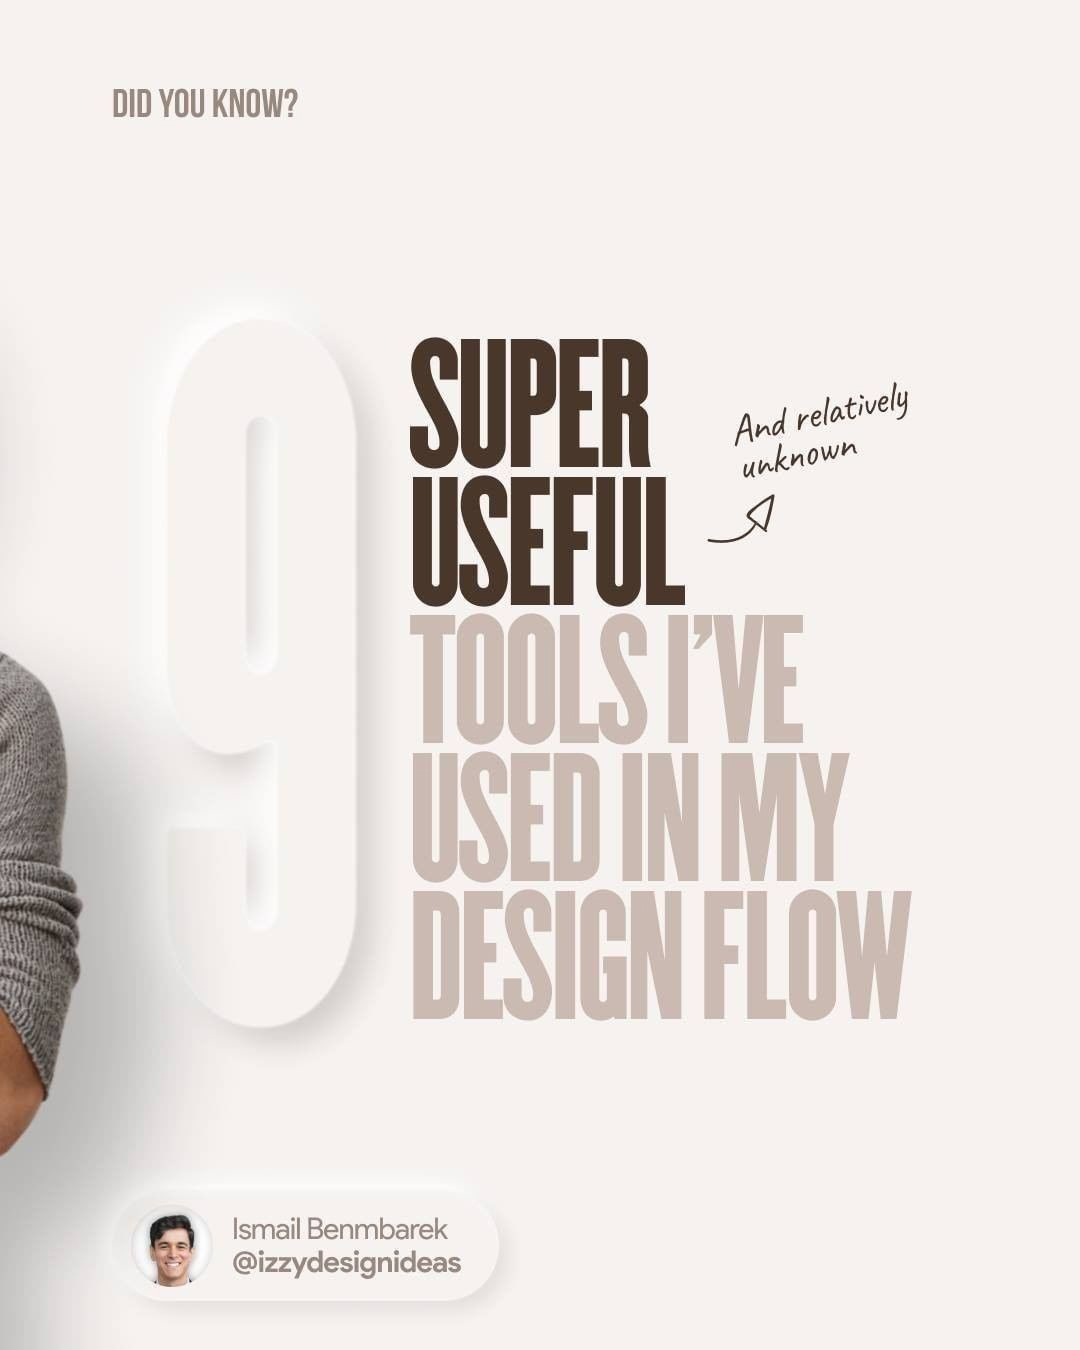 9 super useful tools I've used in my design flow